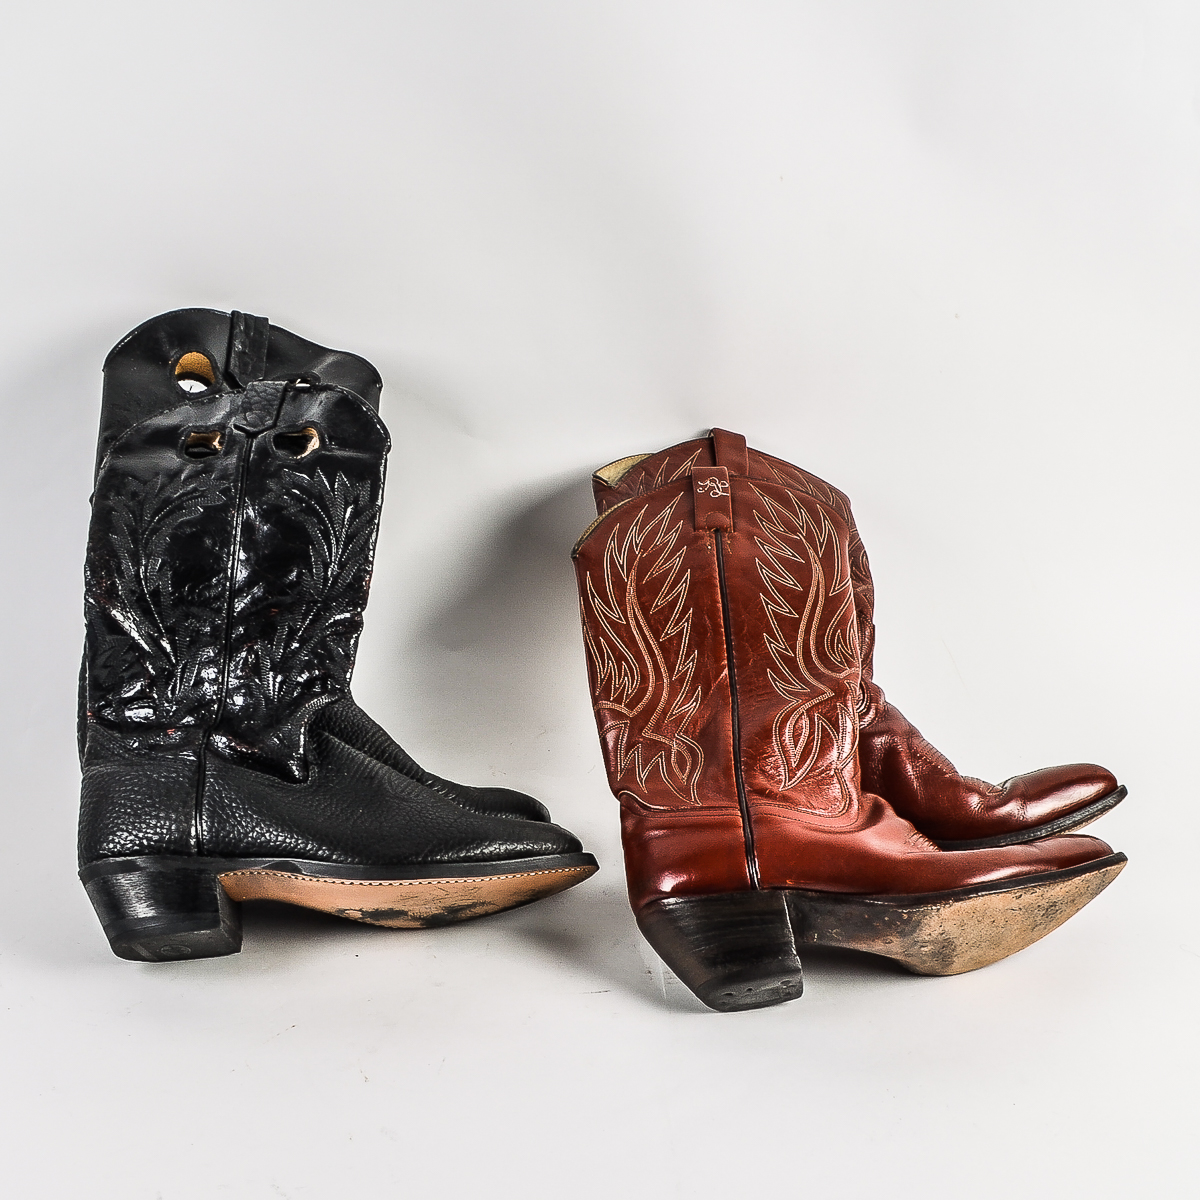 Ralph Leather And Men's Lauren Wrangler Cowboy Boots WH2IDE9